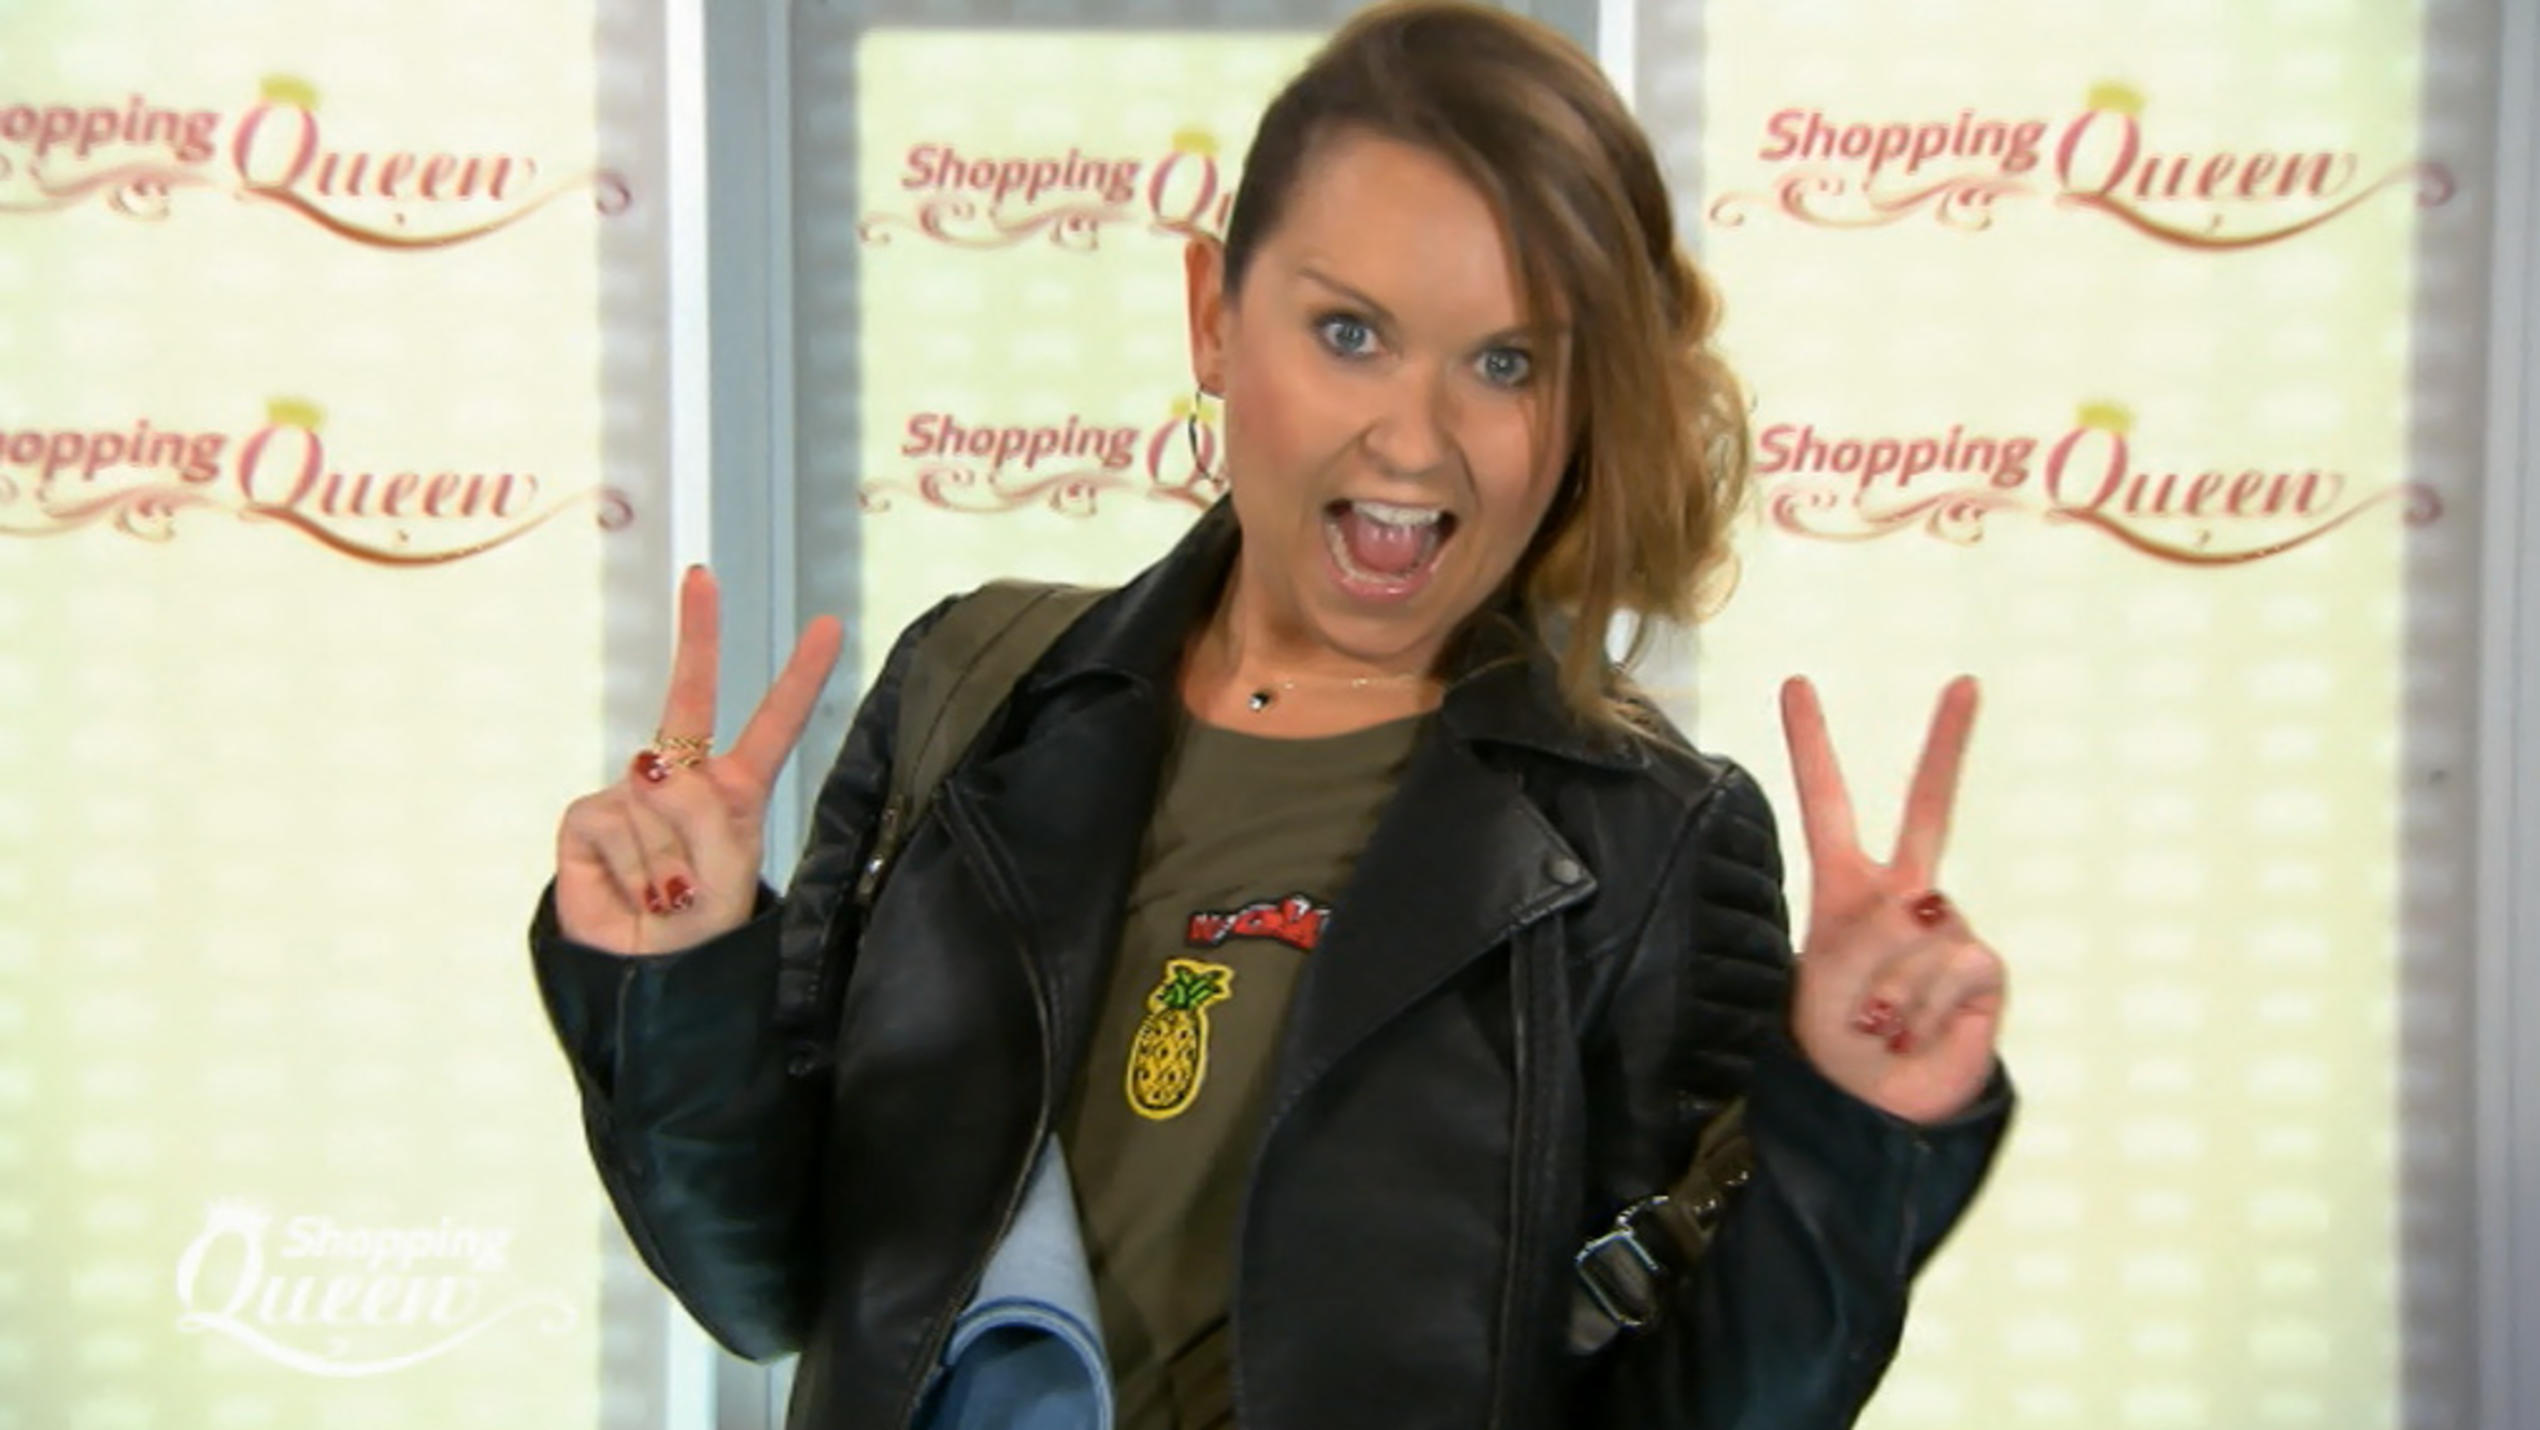 """Shopping Queen""-Kandidatin Agi auf dem Catwalk."